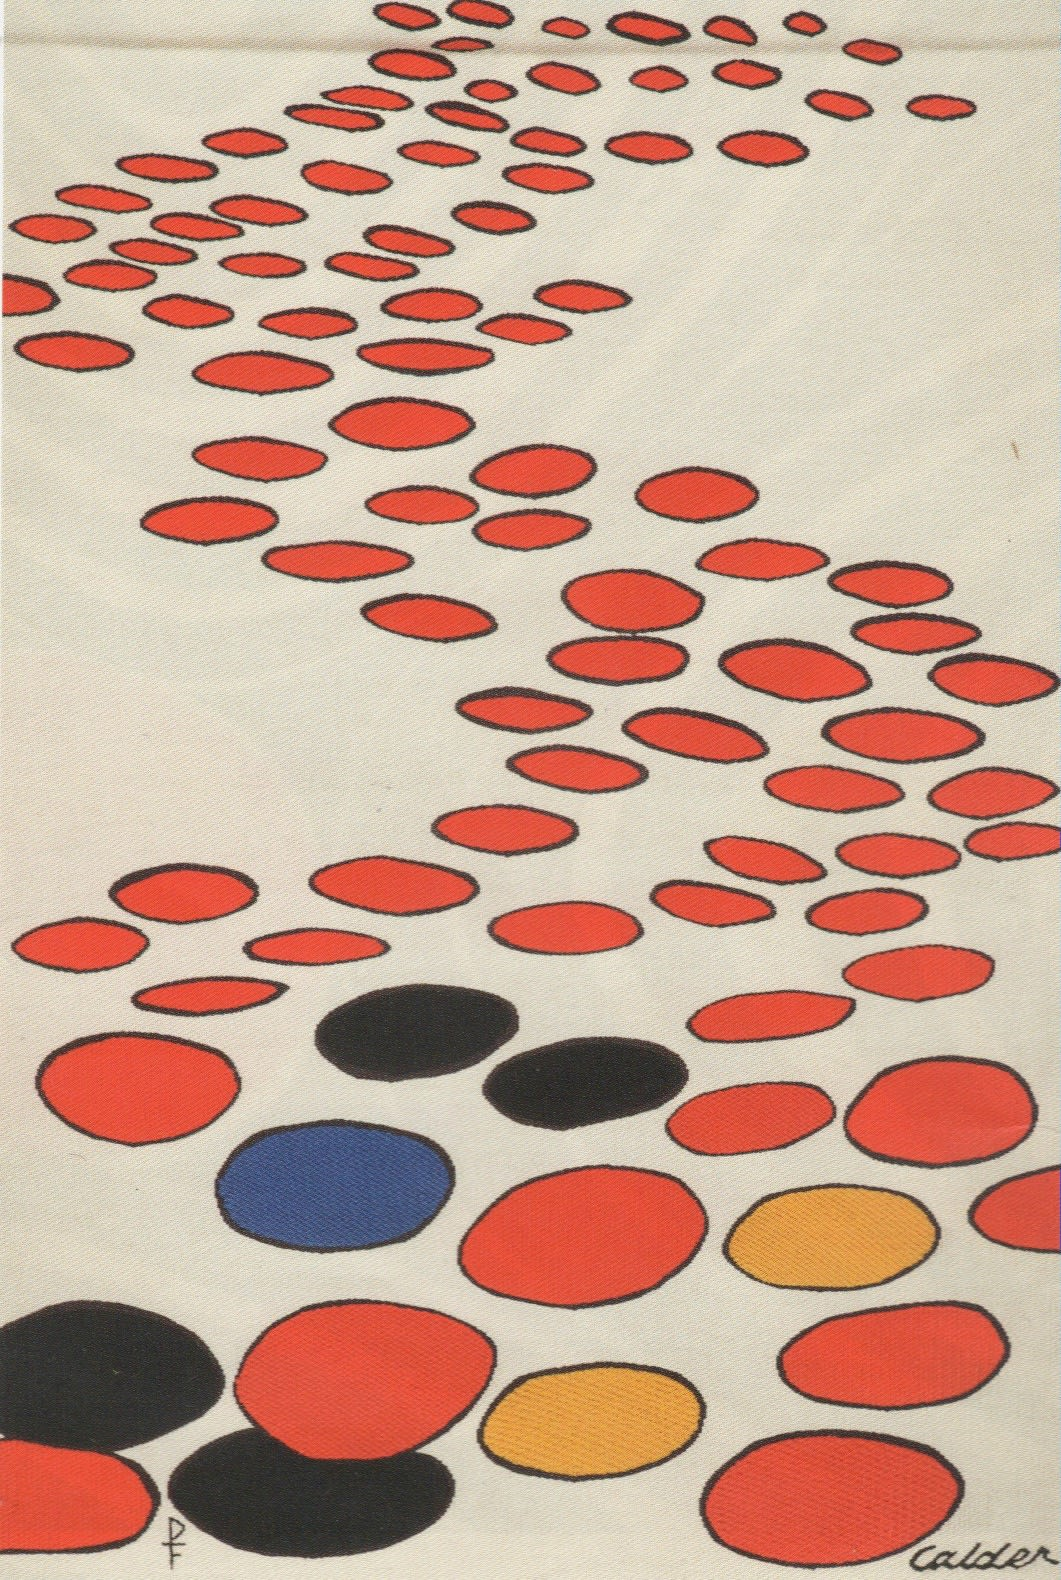 Alexander CALDER (1898 – 1976) Beaucoup de soucoupes volantes Tapestry made for the artist by Pinton Aubusson in an edition of 6 plus 2 artists proofs 64 ¼ x 43 7/8 inches / 163 x 111 cm Signed and stamped